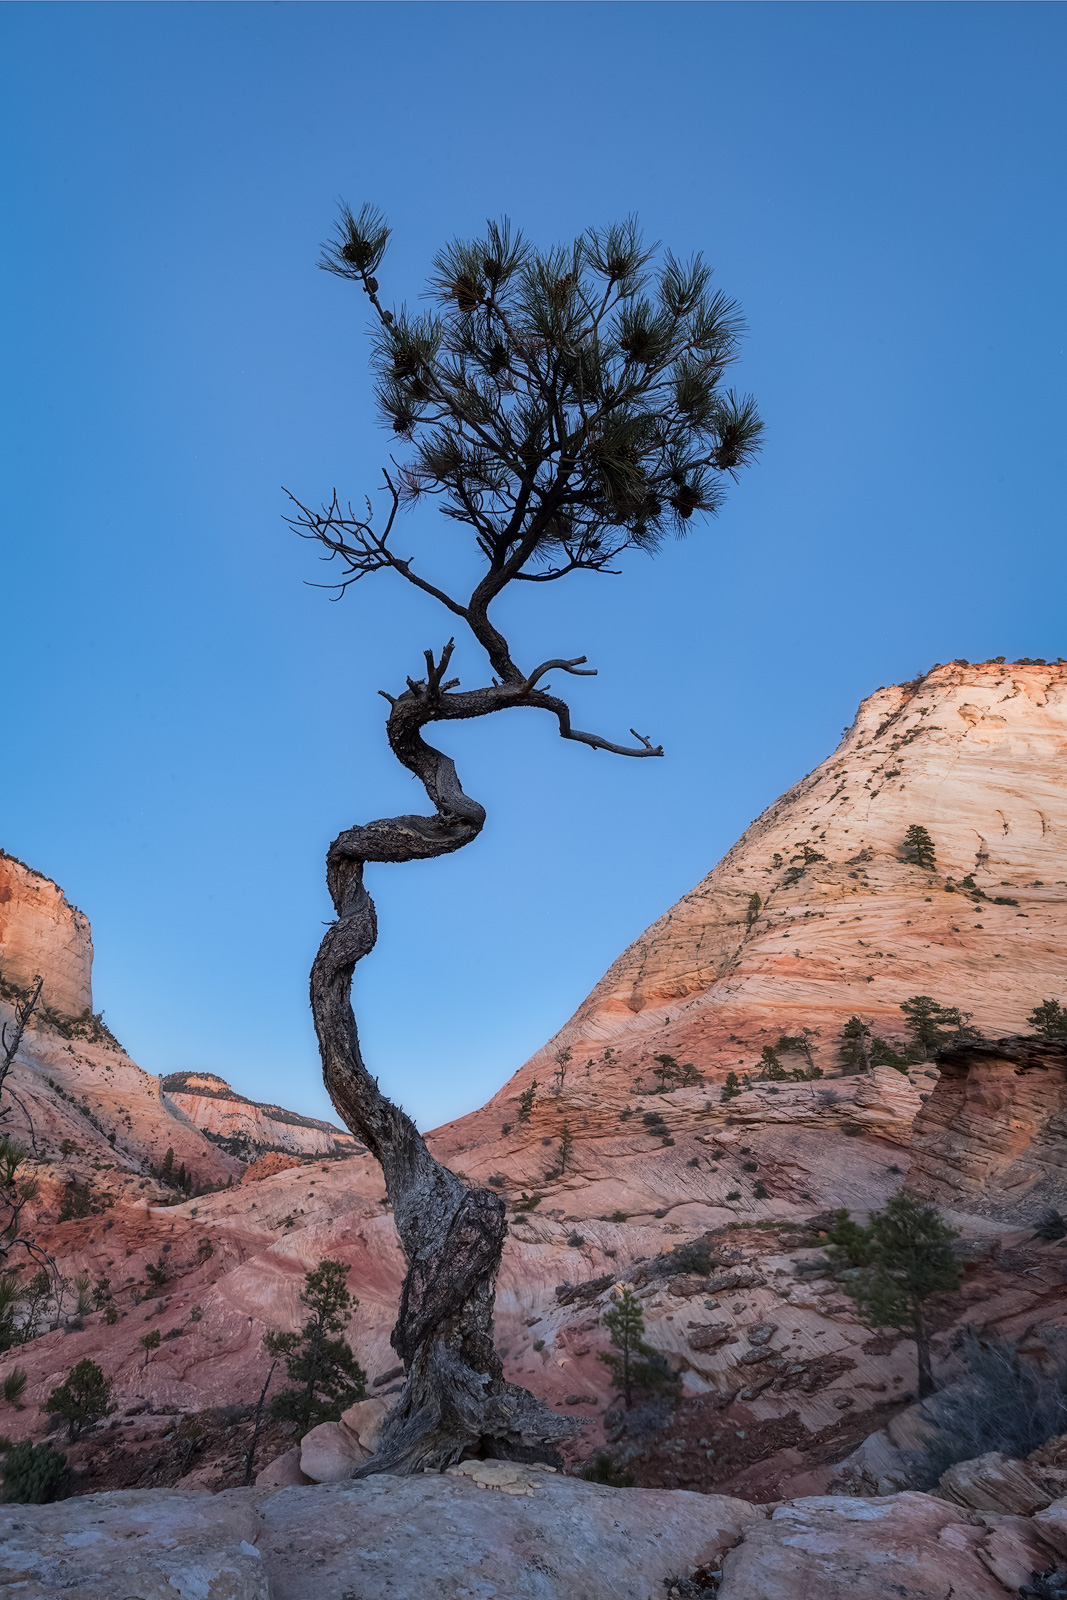 A lone tree in front of a mountain valley at twilight.